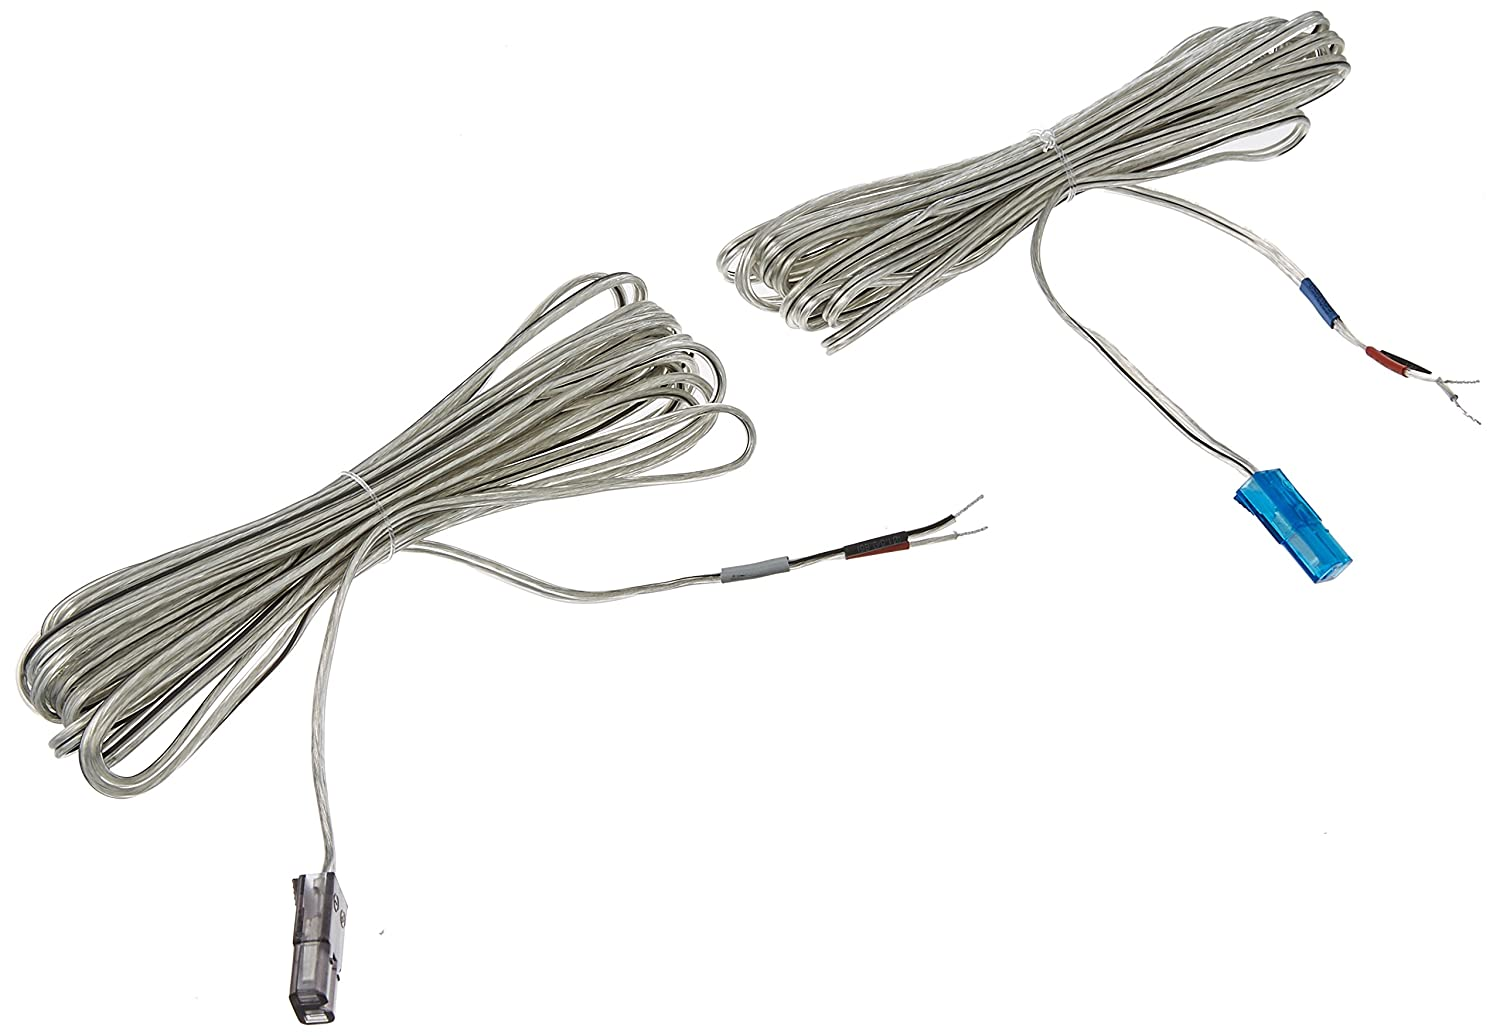 Samsung Ah81 02137a A S Part Speaker Wire Home Improvement Wiring Devices Market Share